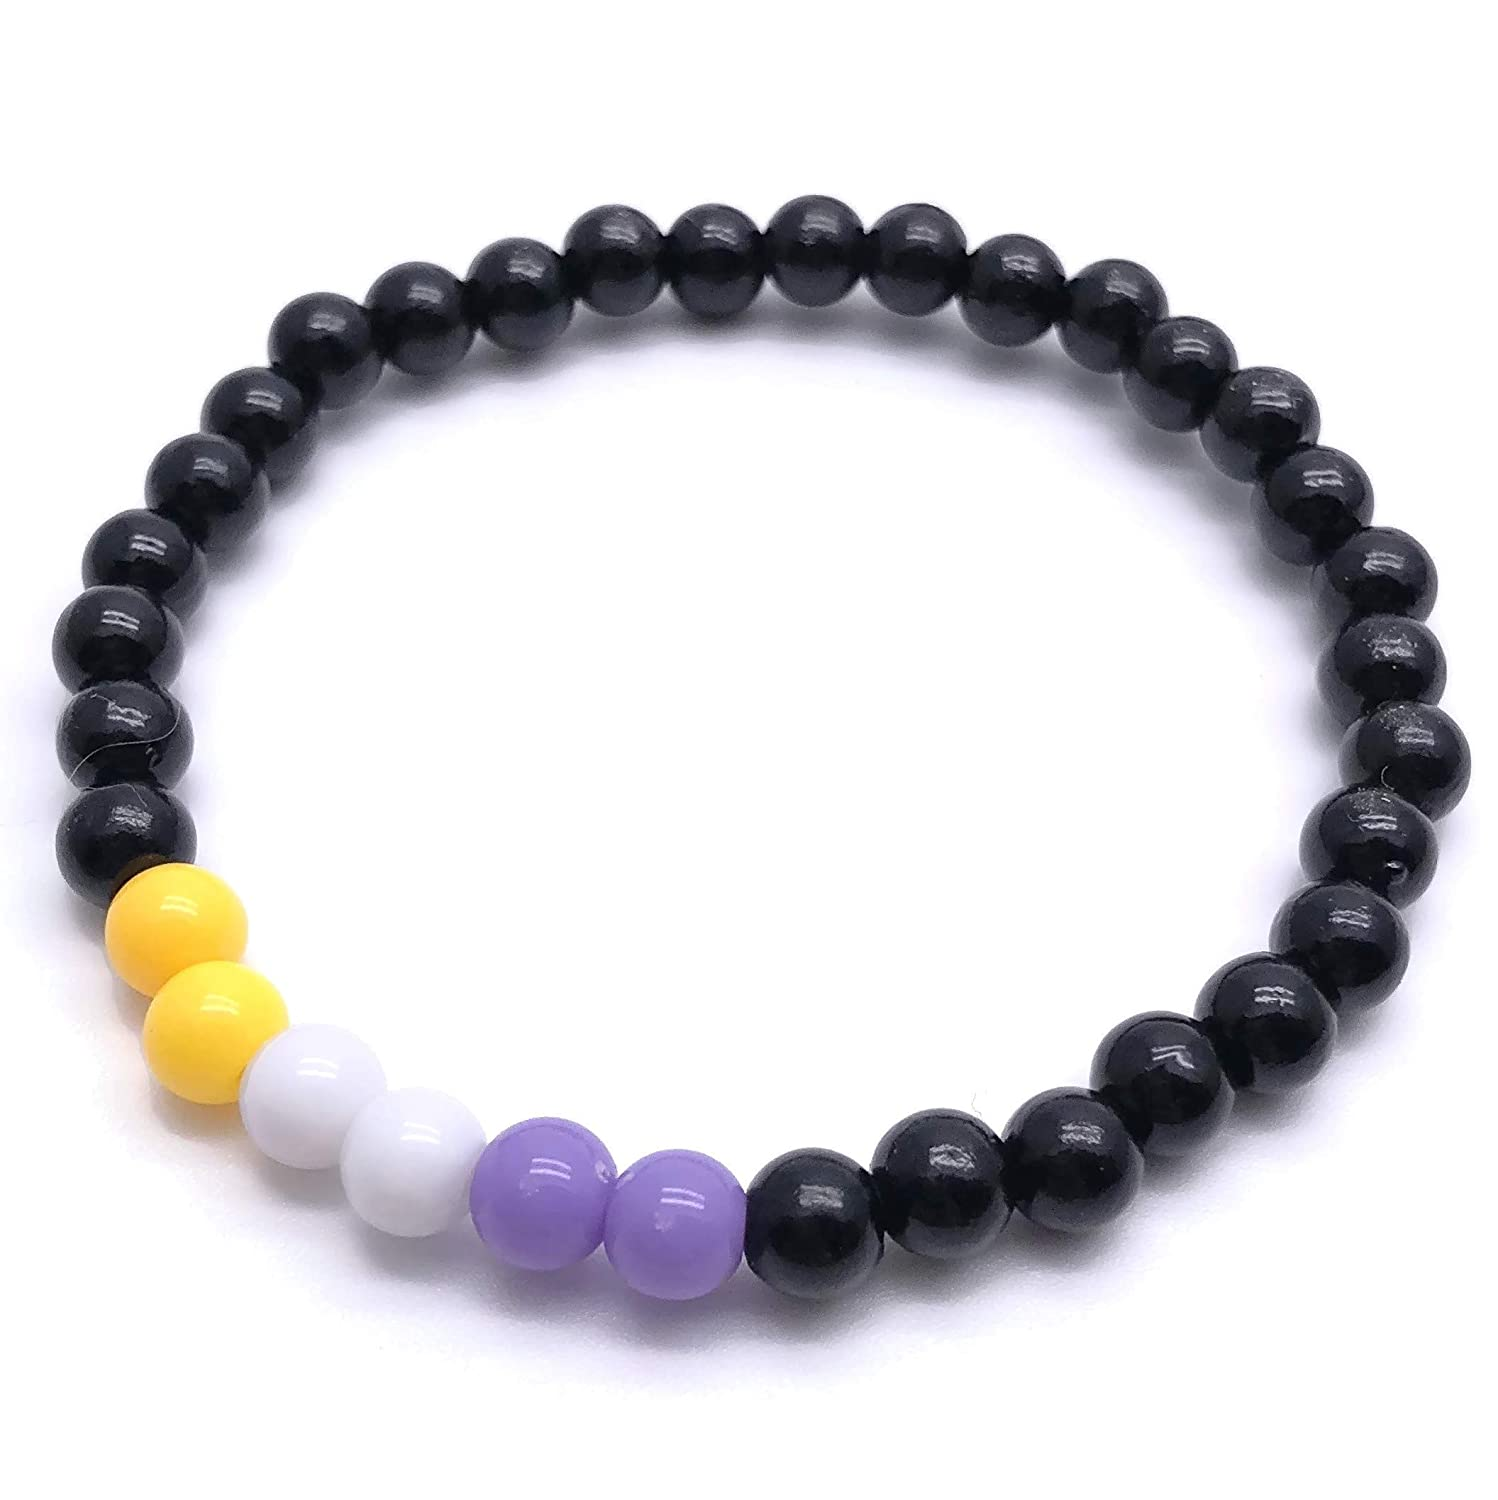 NON Max 42% OFF BINARY Flag Bead Bracelet - Yellow Super sale 6mm and White Lavender Bl